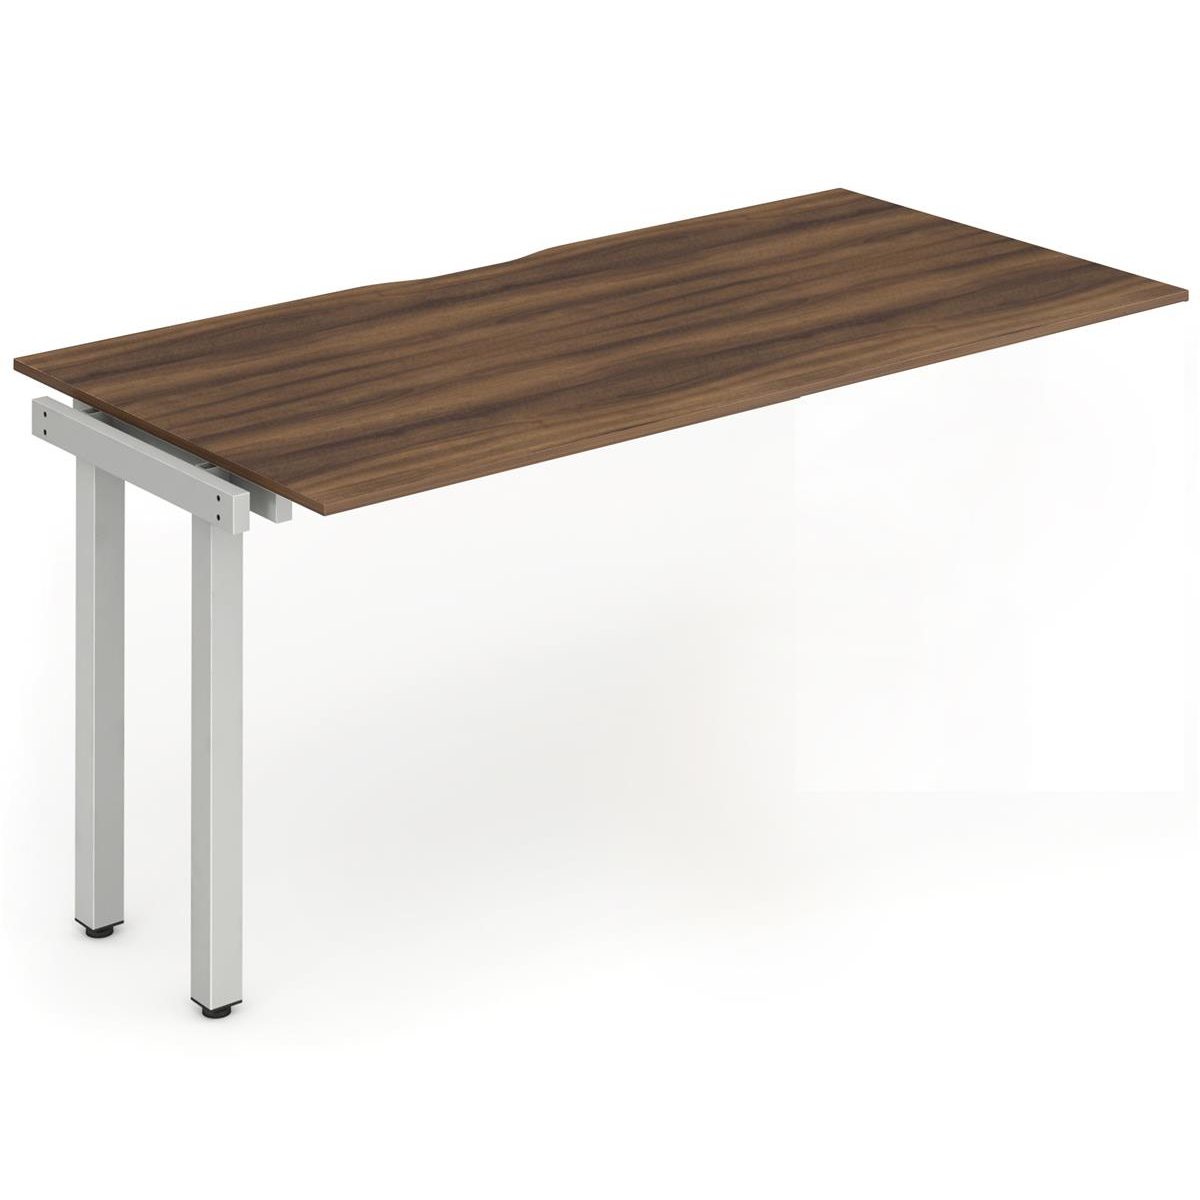 Trexus Bench Desk Single Extension Silver Leg 1400x800mm Walnut Ref BE334